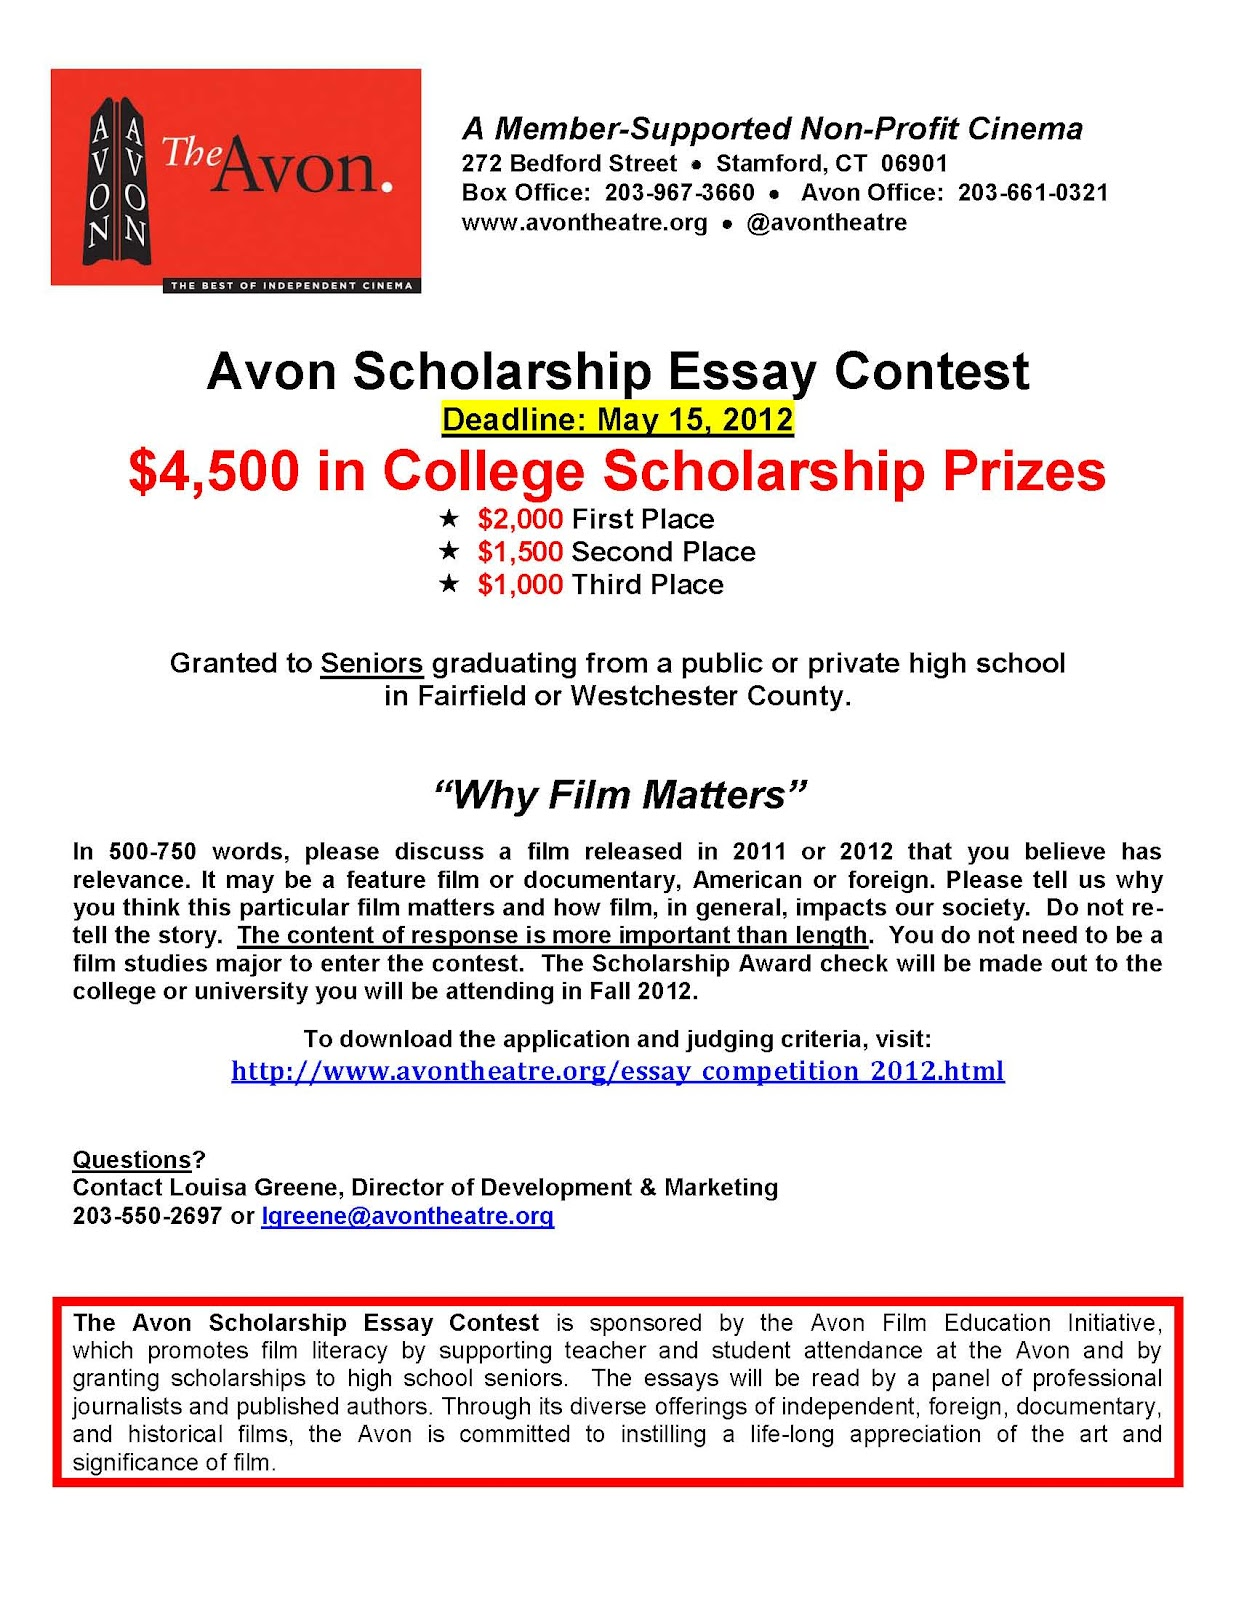 002 No Essay Collegeip Prowler Freeips For High School Seniors Avonscholarshipessaycontest2012 In Texas California Class Of Short Example Wondrous Scholarship College Scholarships 2018 2019 Free Full